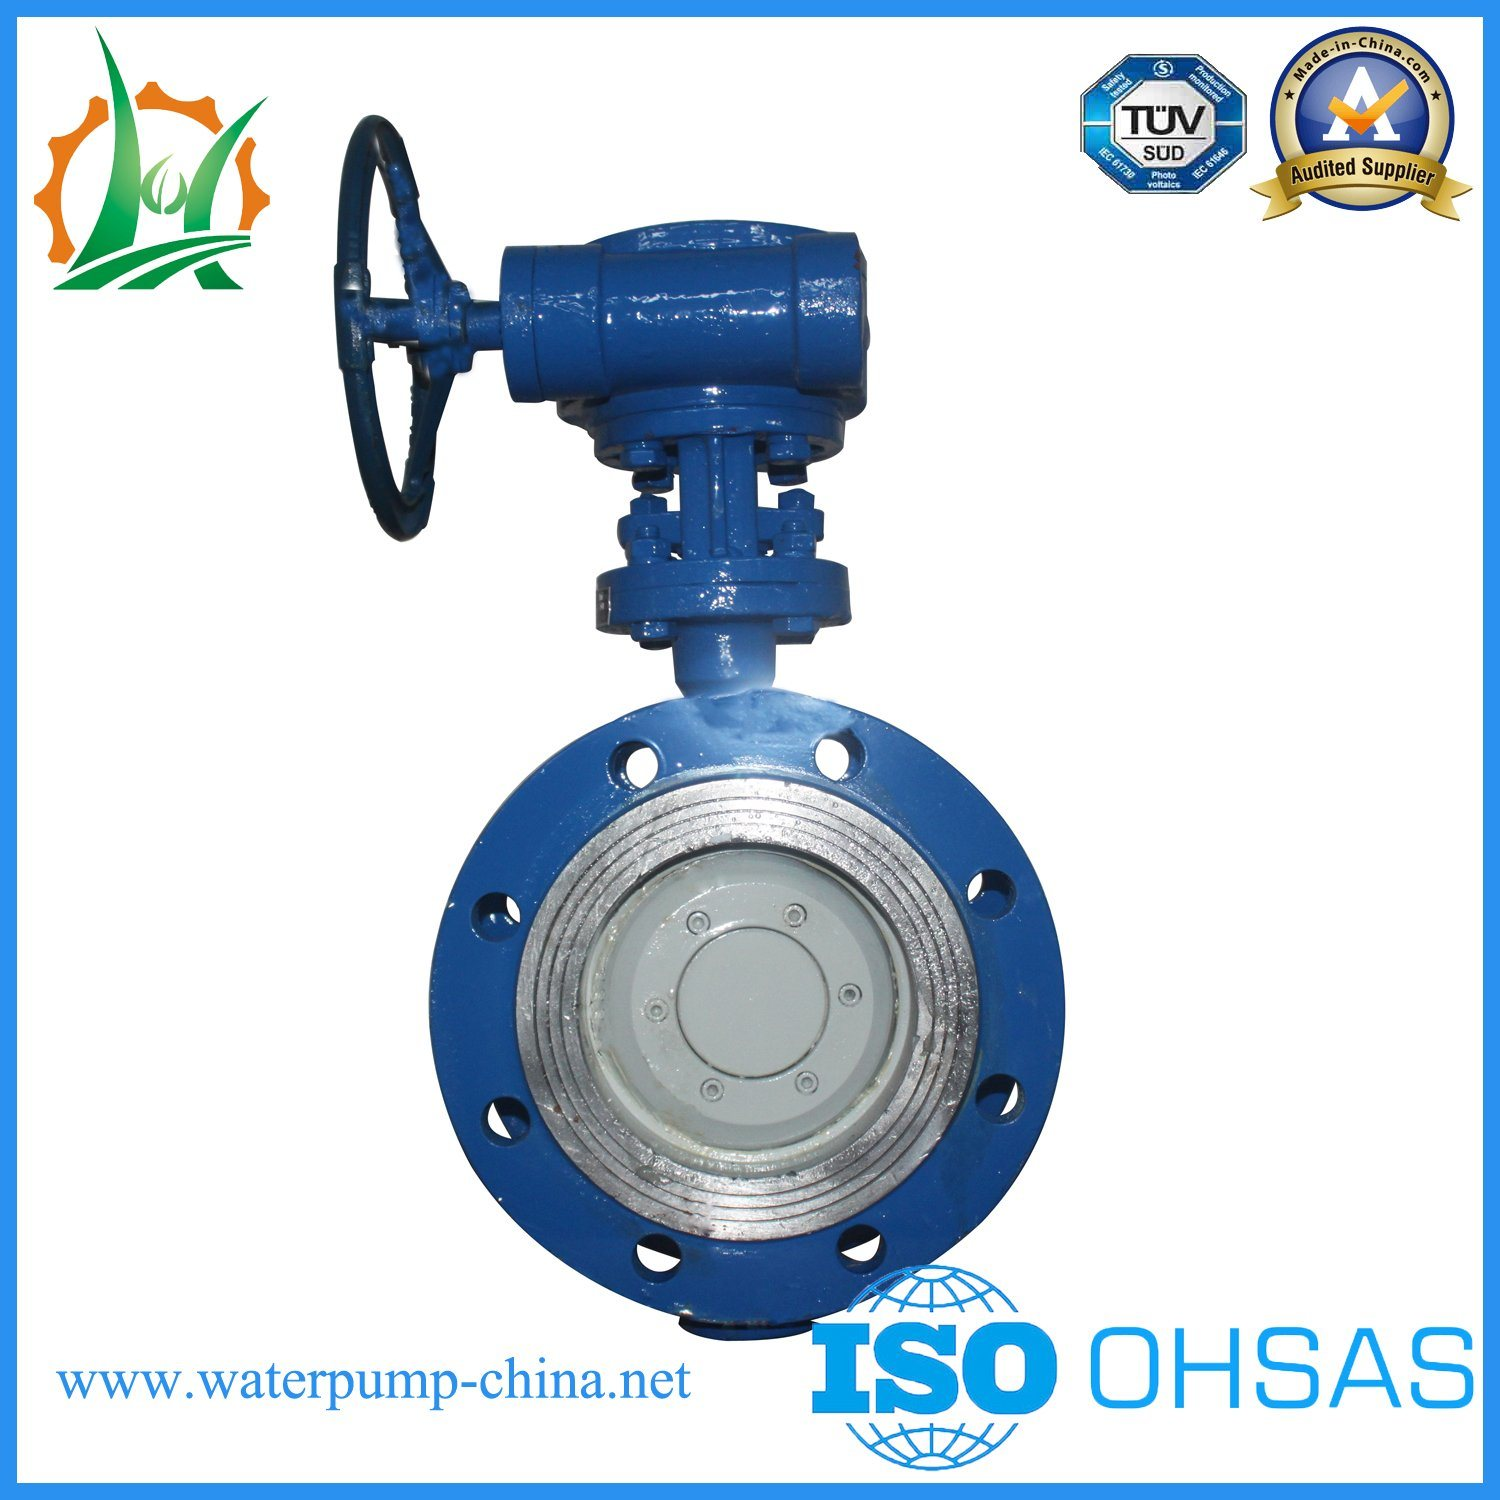 Dewatering Pump, Vacuum Assist Mixed-Flow Trailer Centrifugal Water Pump